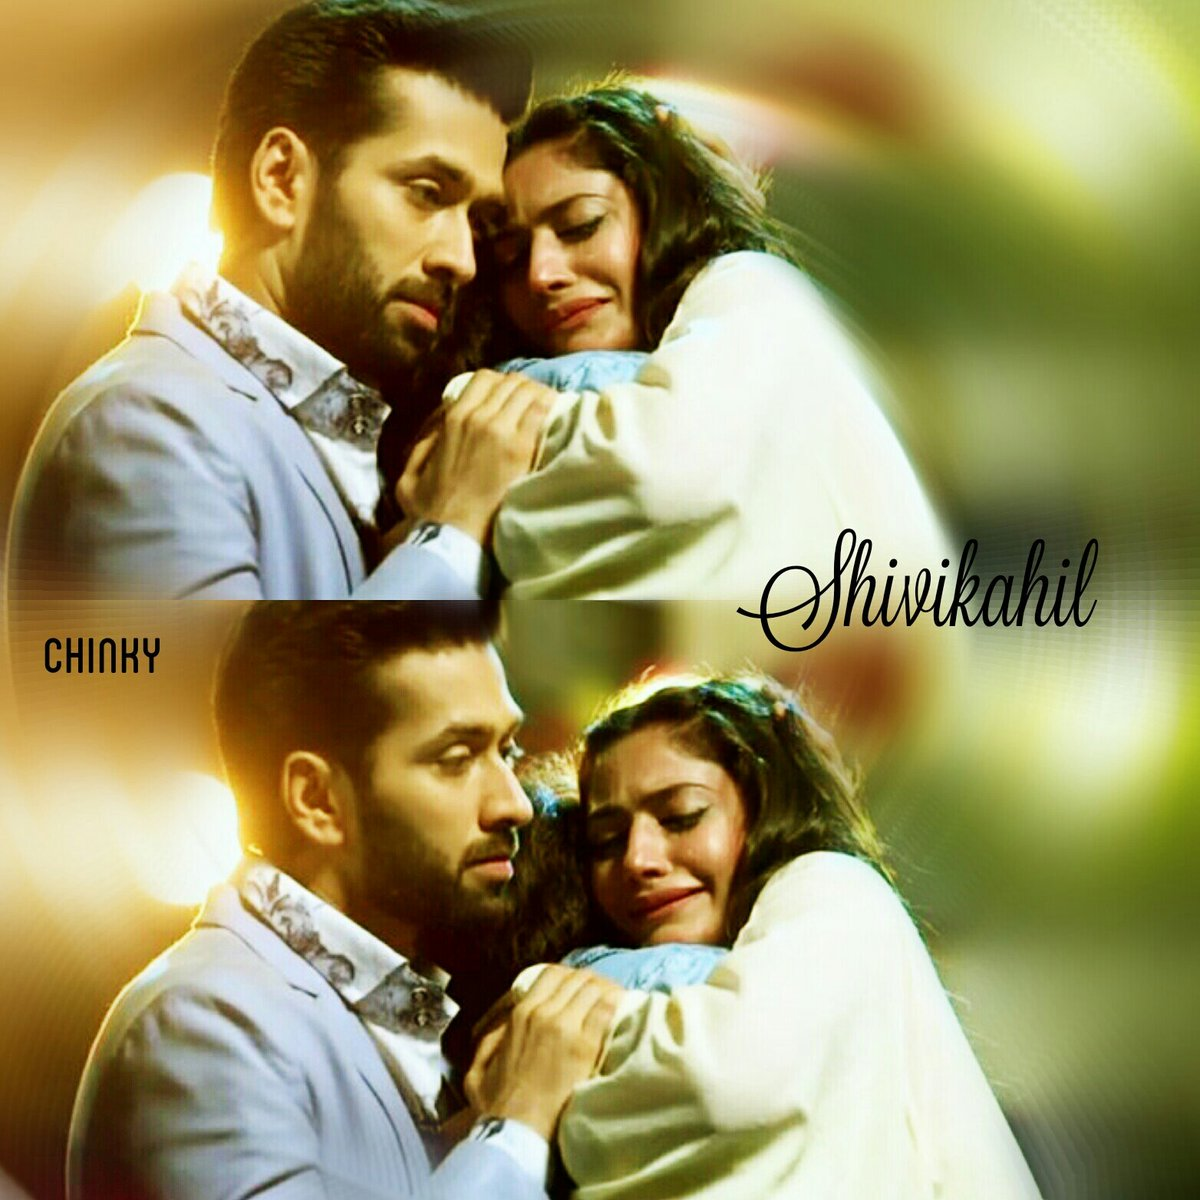 #ShivikAhil  Super loved the scenes when Shivika and Sahil are together... #Hug @NakuulMehta @SurbhiChandna @Reeta30097342<br>http://pic.twitter.com/OtZu2Zcajo